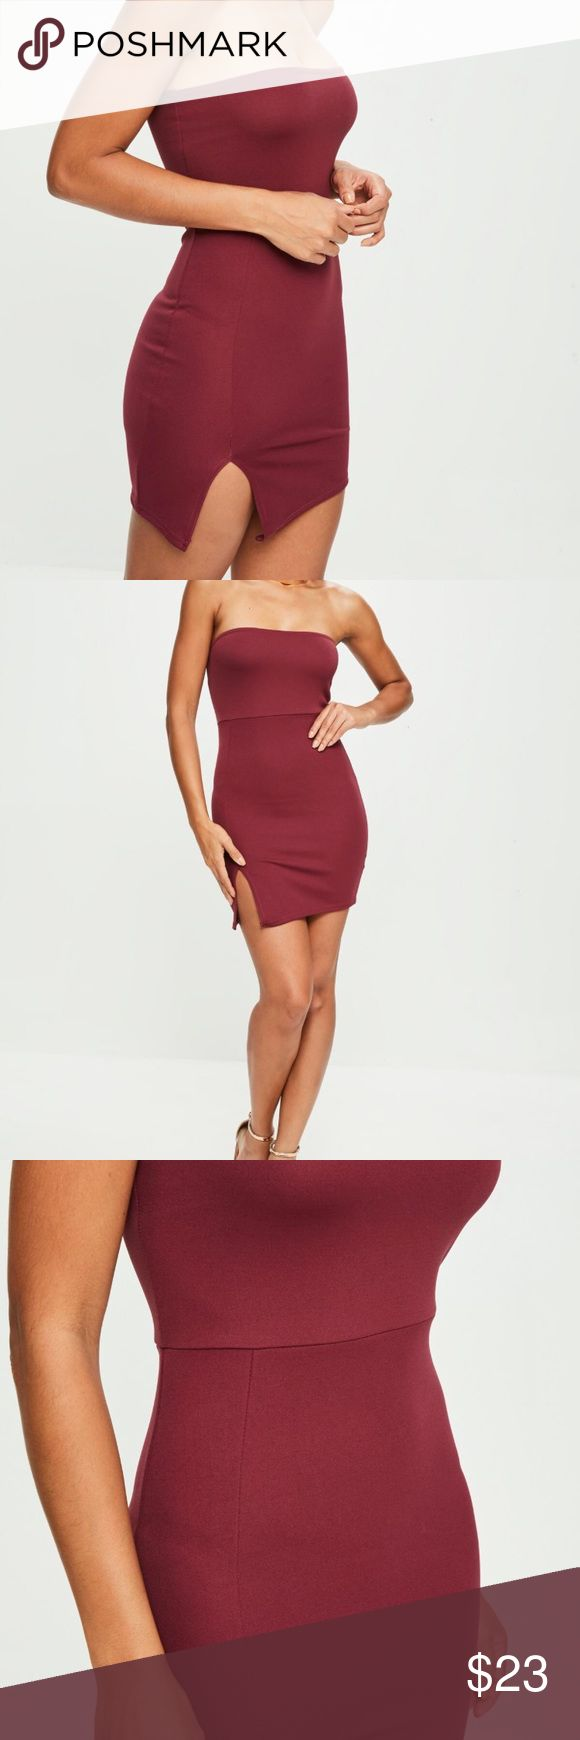 Burgundy Scuba Split Side Mini Dress Perfect homecoming, formal, prom, or party dress! New with tags! If you have any questions feel free to ask:) Missguided Dresses Mini